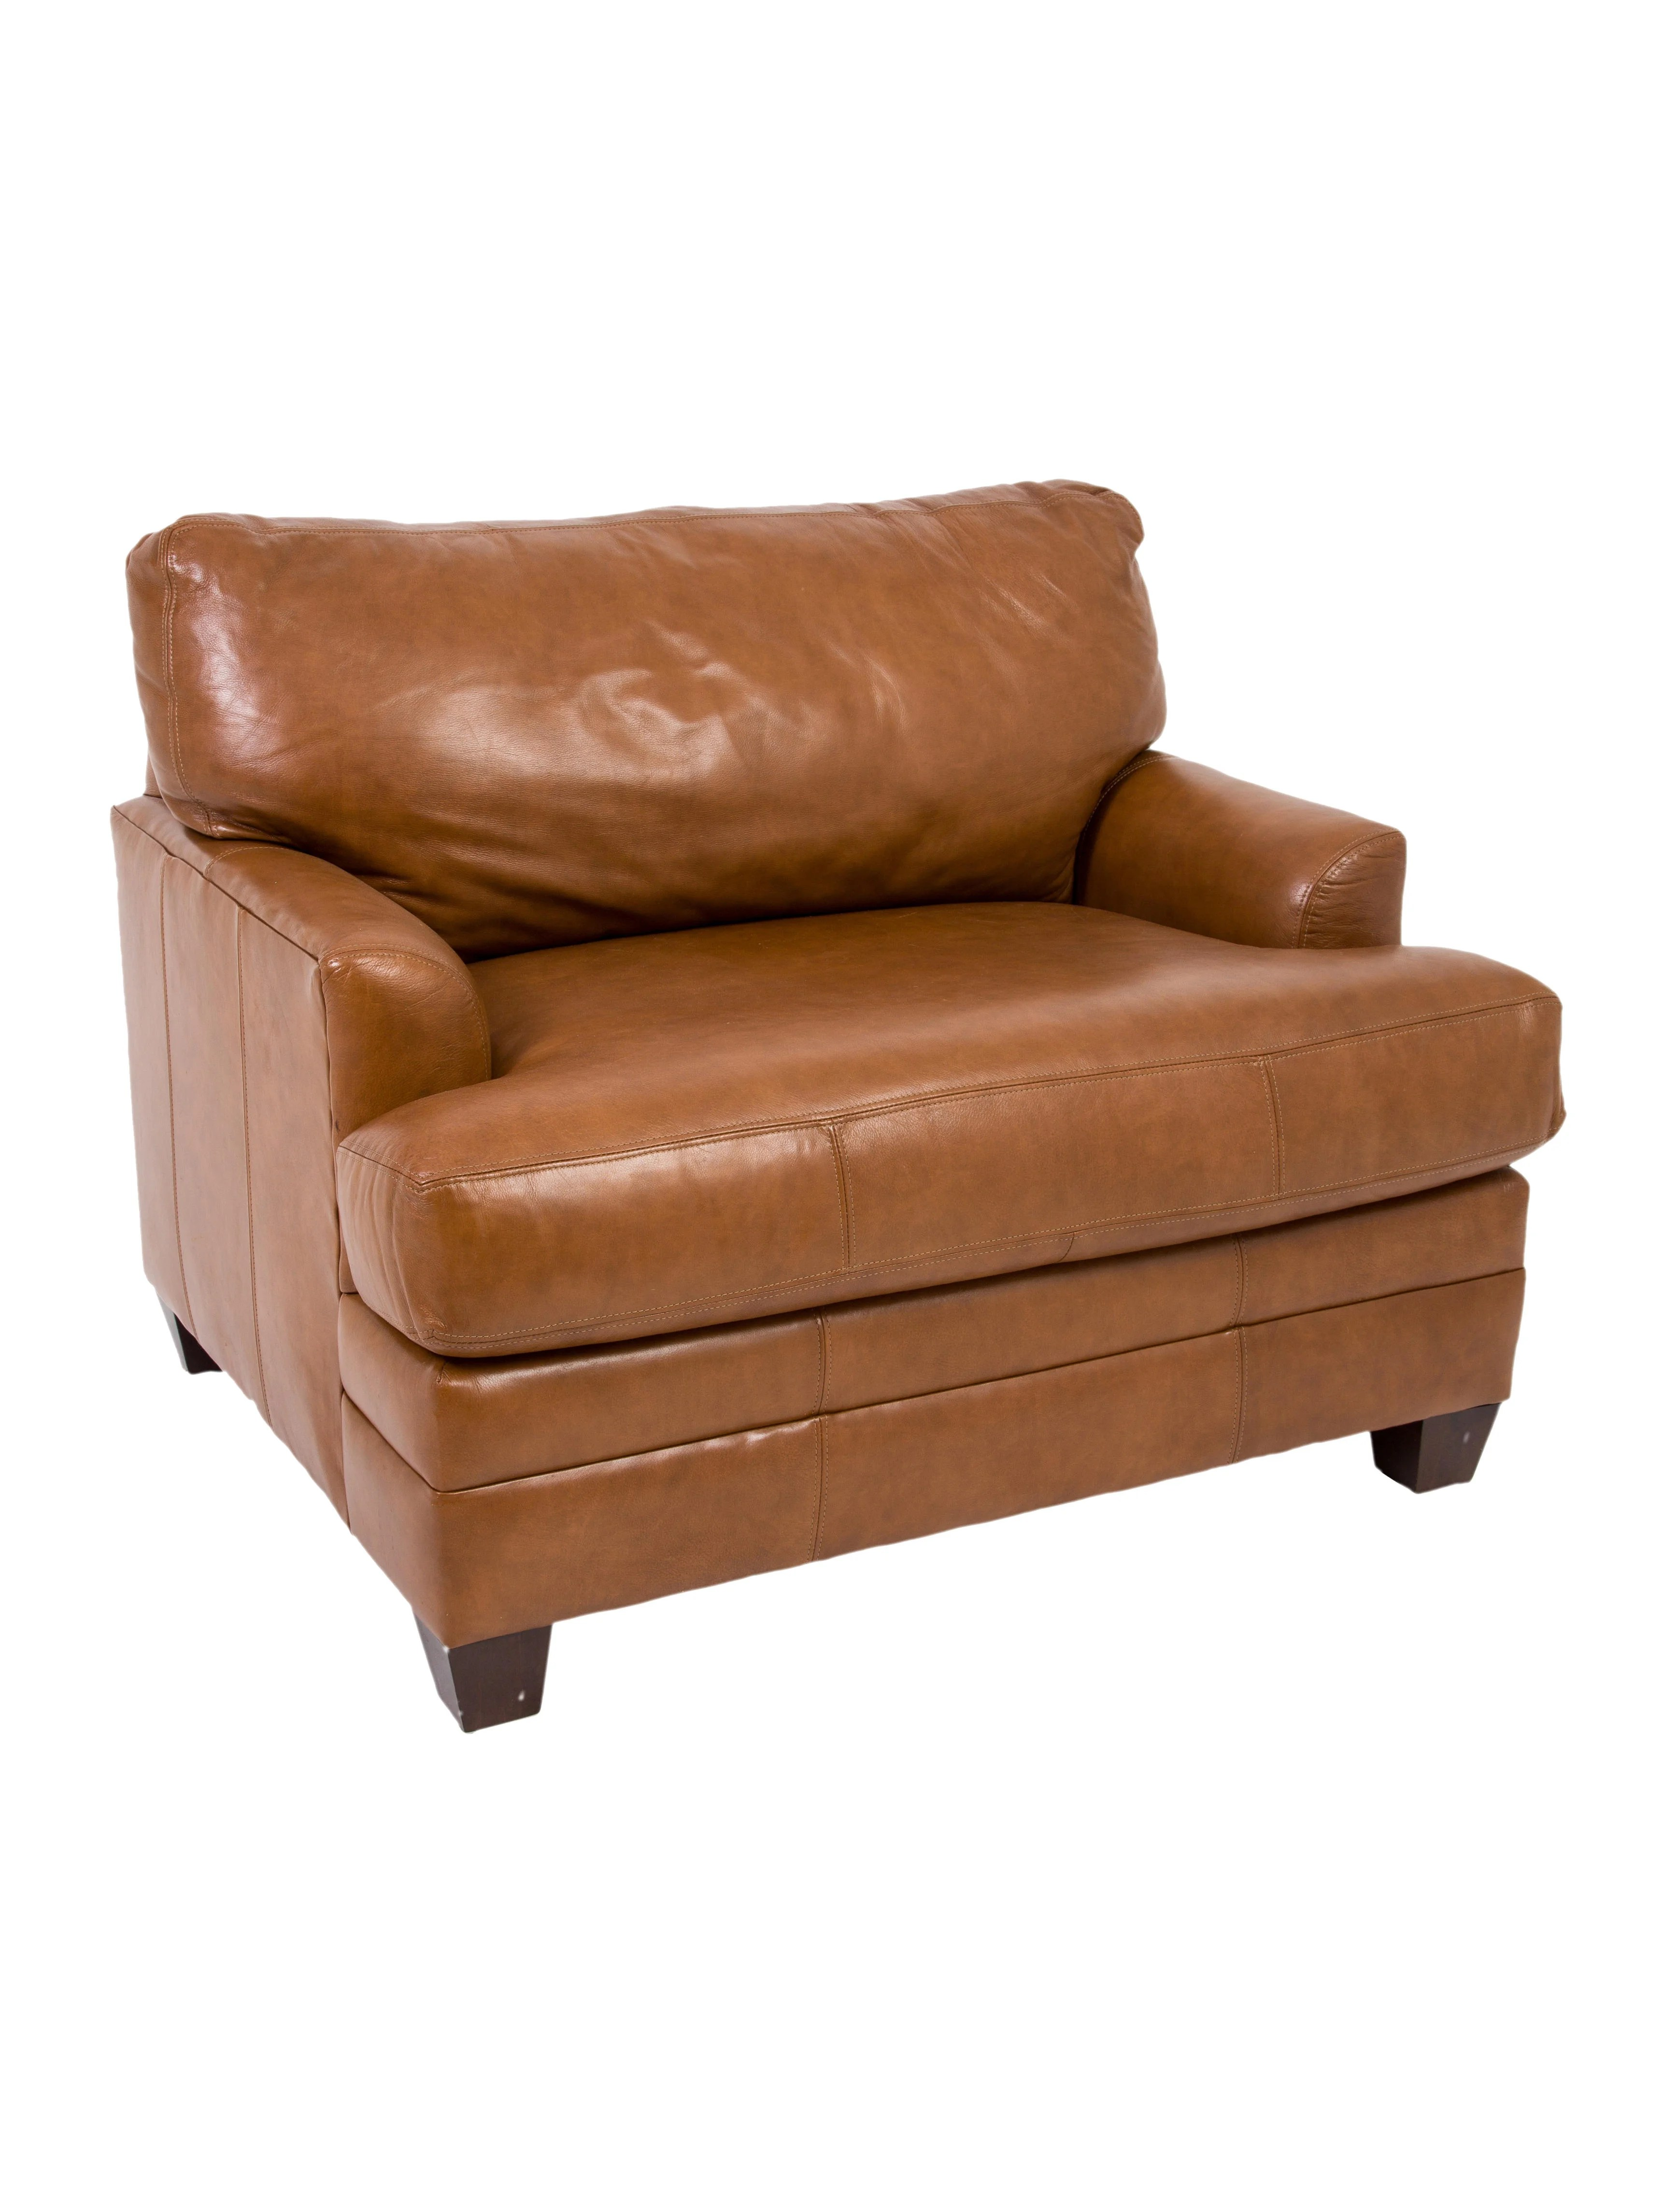 bassett furniture chairs purple bedroom reading chair leather lounge chair20351